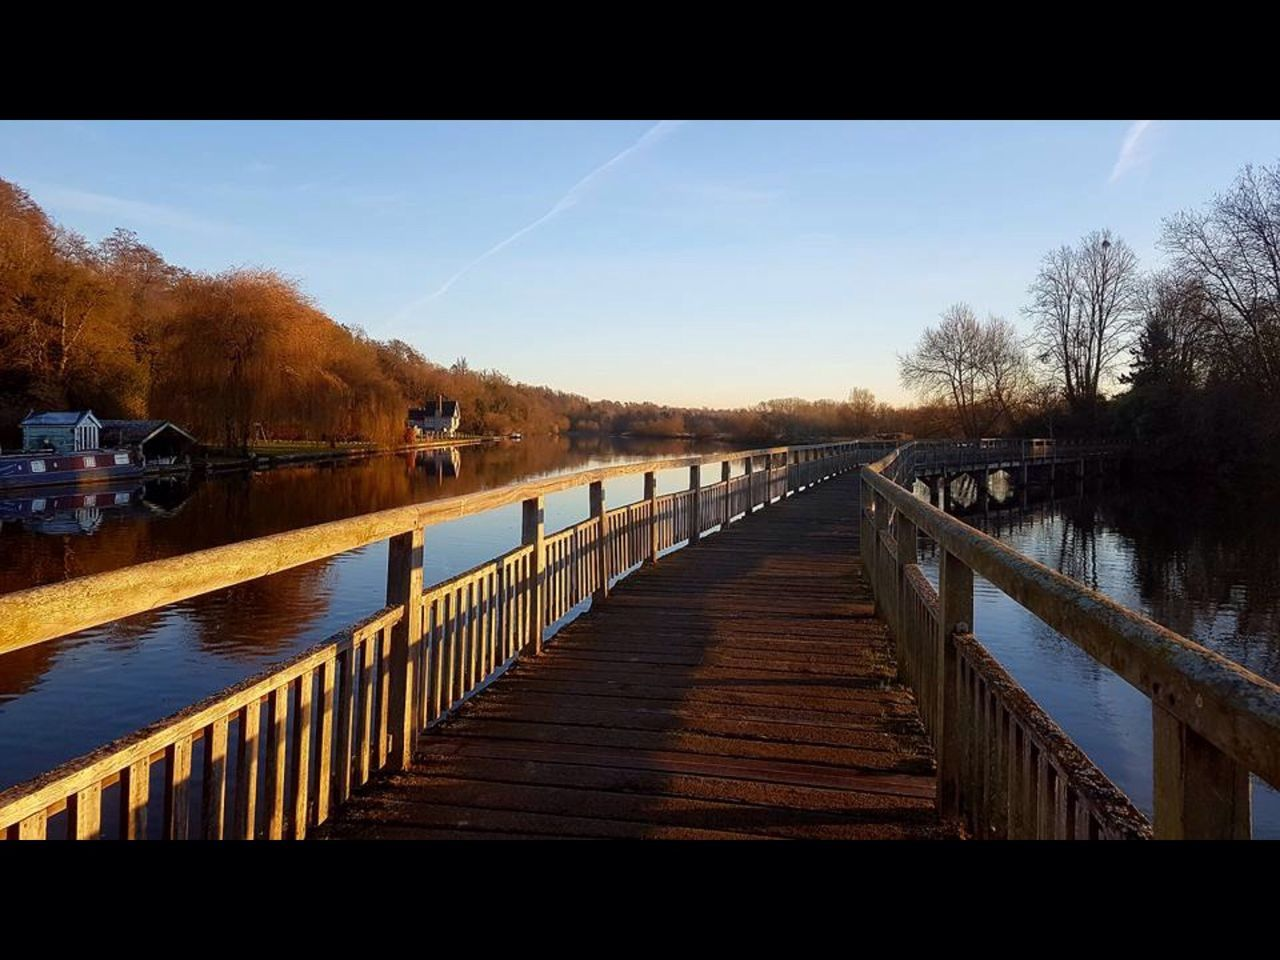 railing, tree, water, no people, lake, outdoors, nature, tranquil scene, tranquility, sky, day, the way forward, scenics, beauty in nature, built structure, footbridge